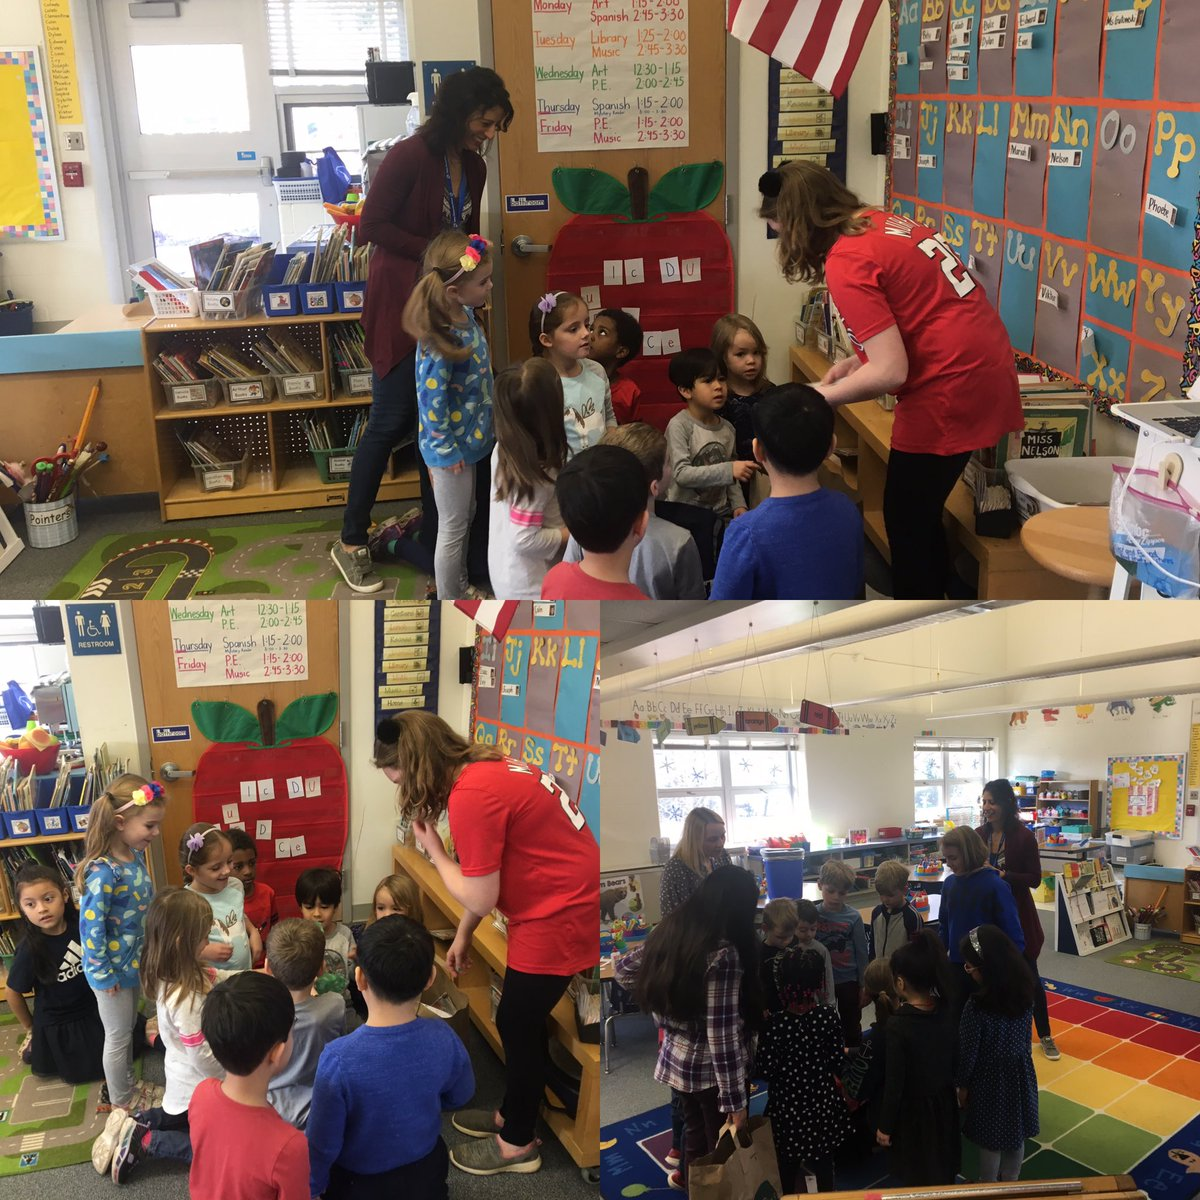 Mrs. Wexler and the Green Team presenting to Ms Gutowski's class about recycling.  The team got the students actively engaged in recycling activities. <a target='_blank' href='http://twitter.com/GlebeAPS'>@GlebeAPS</a> <a target='_blank' href='http://search.twitter.com/search?q=GlebeEagles'><a target='_blank' href='https://twitter.com/hashtag/GlebeEagles?src=hash'>#GlebeEagles</a></a> <a target='_blank' href='https://t.co/KImOJqLMZn'>https://t.co/KImOJqLMZn</a>